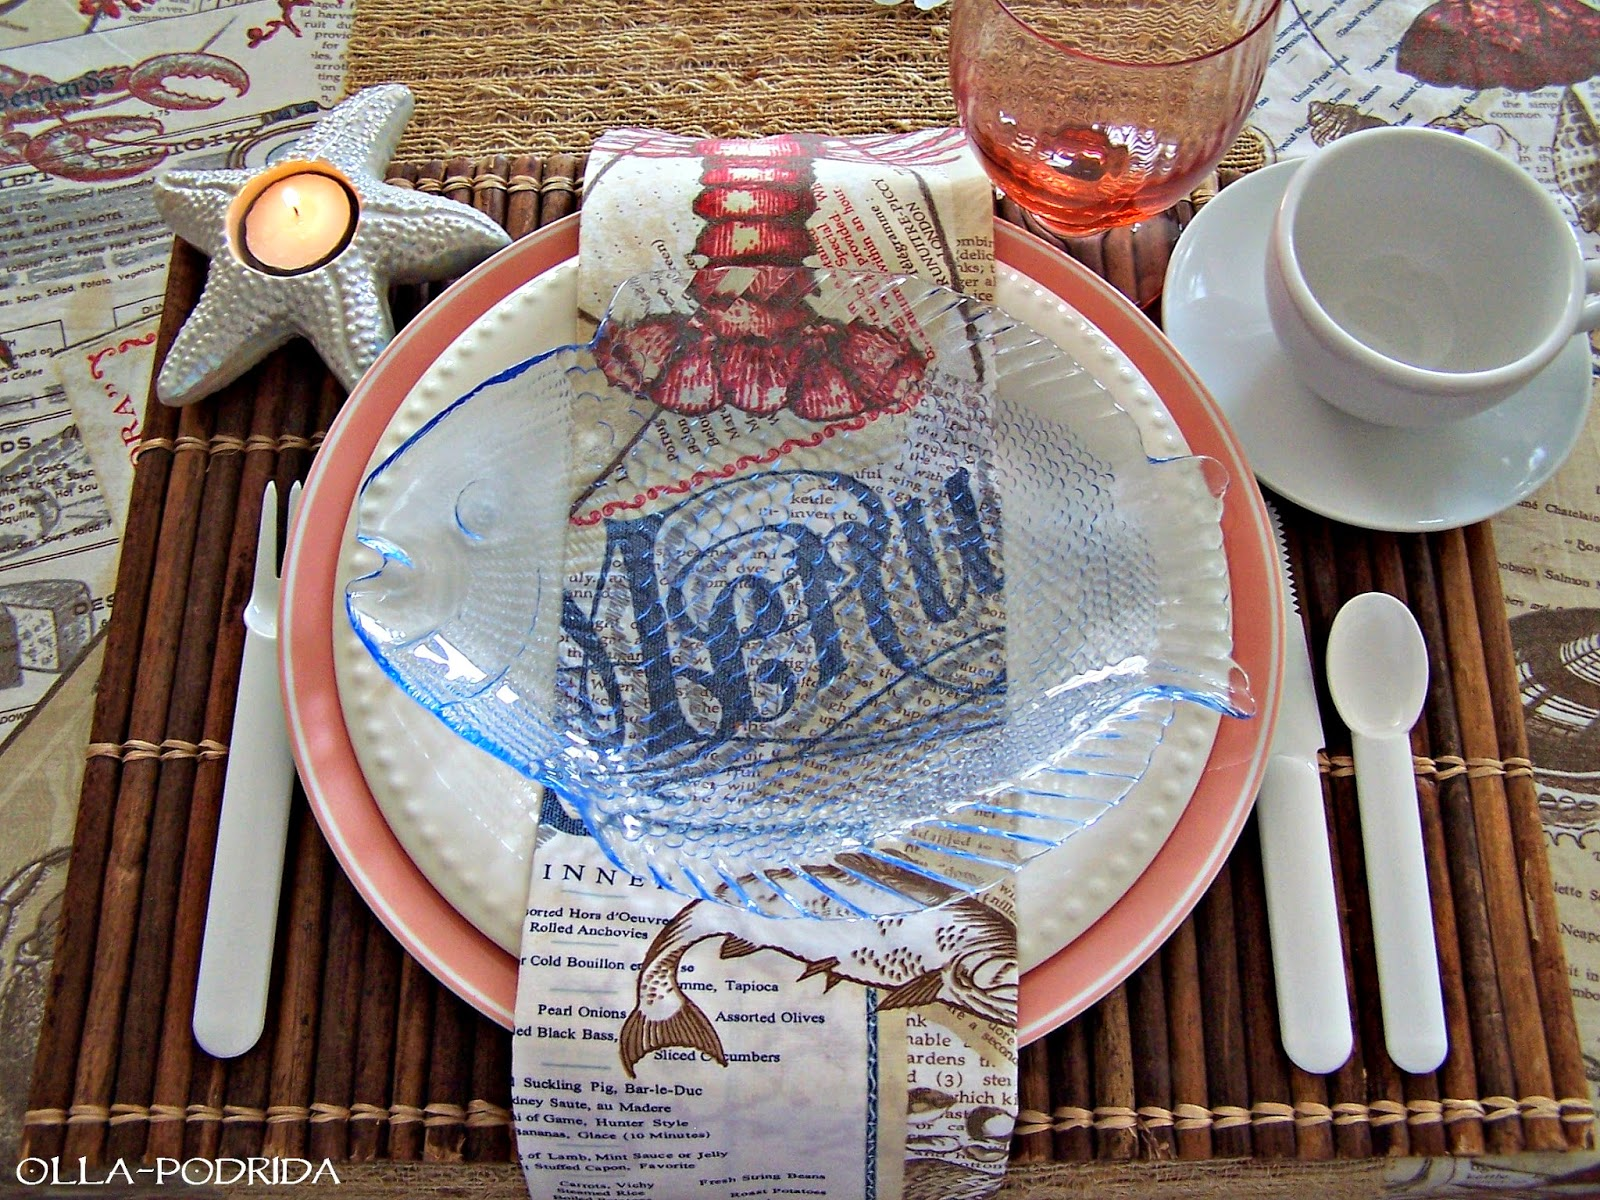 I have loved the elements of the sea from early on. I have no idea where this love came from but it has been with me since my youth. & Olla-Podrida: Seaside Picnic Table Setting